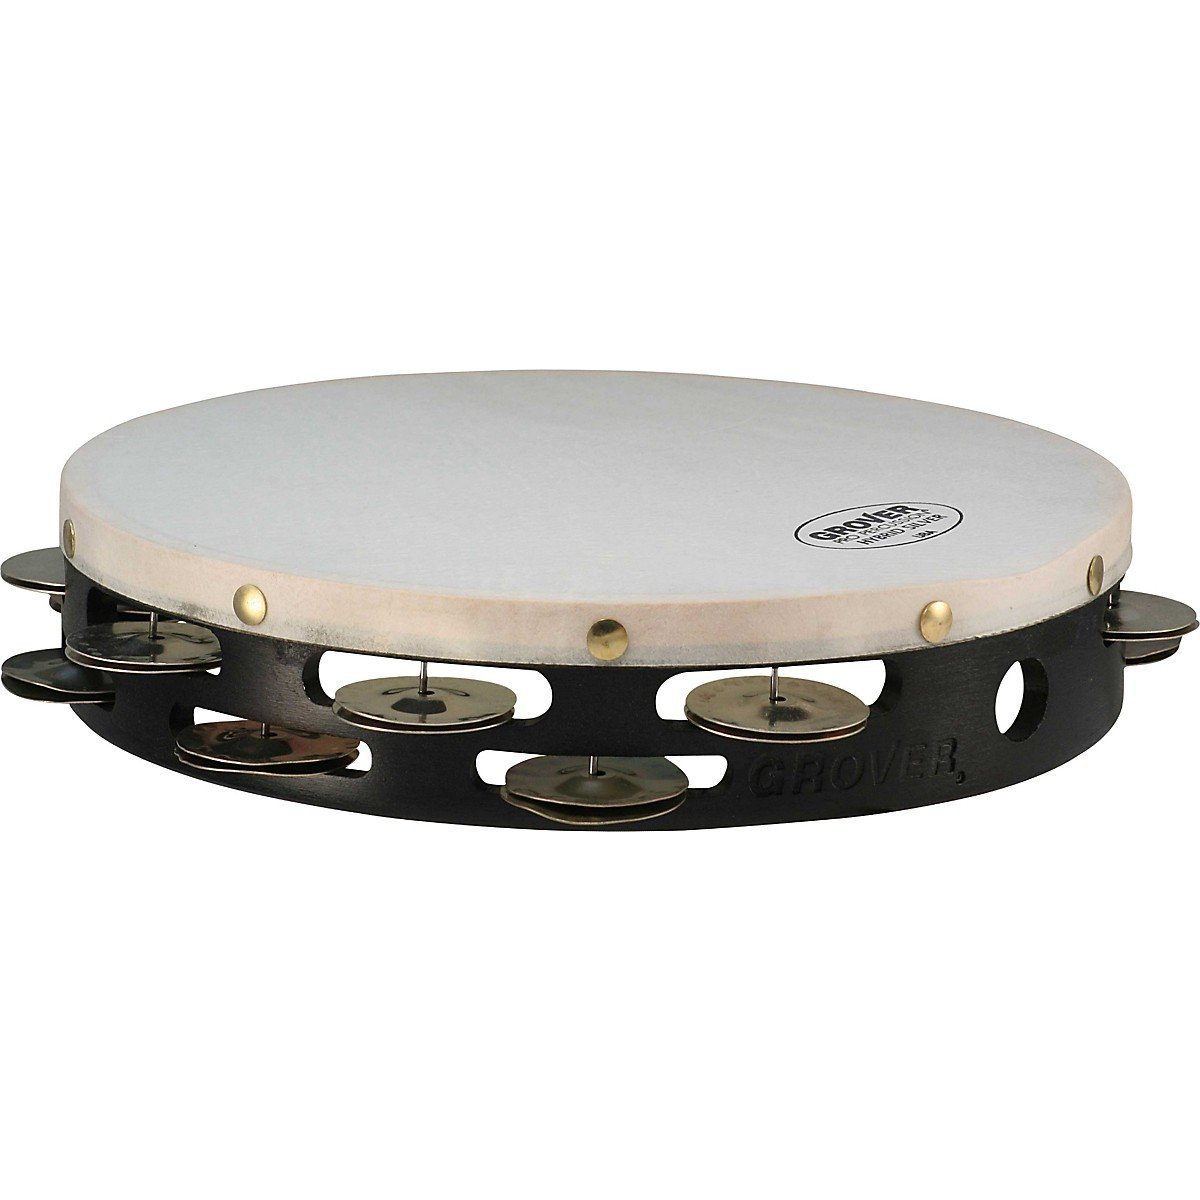 Grover Pro T2/HS Hybrid Double-Row 10'' Tambourine 10 in.